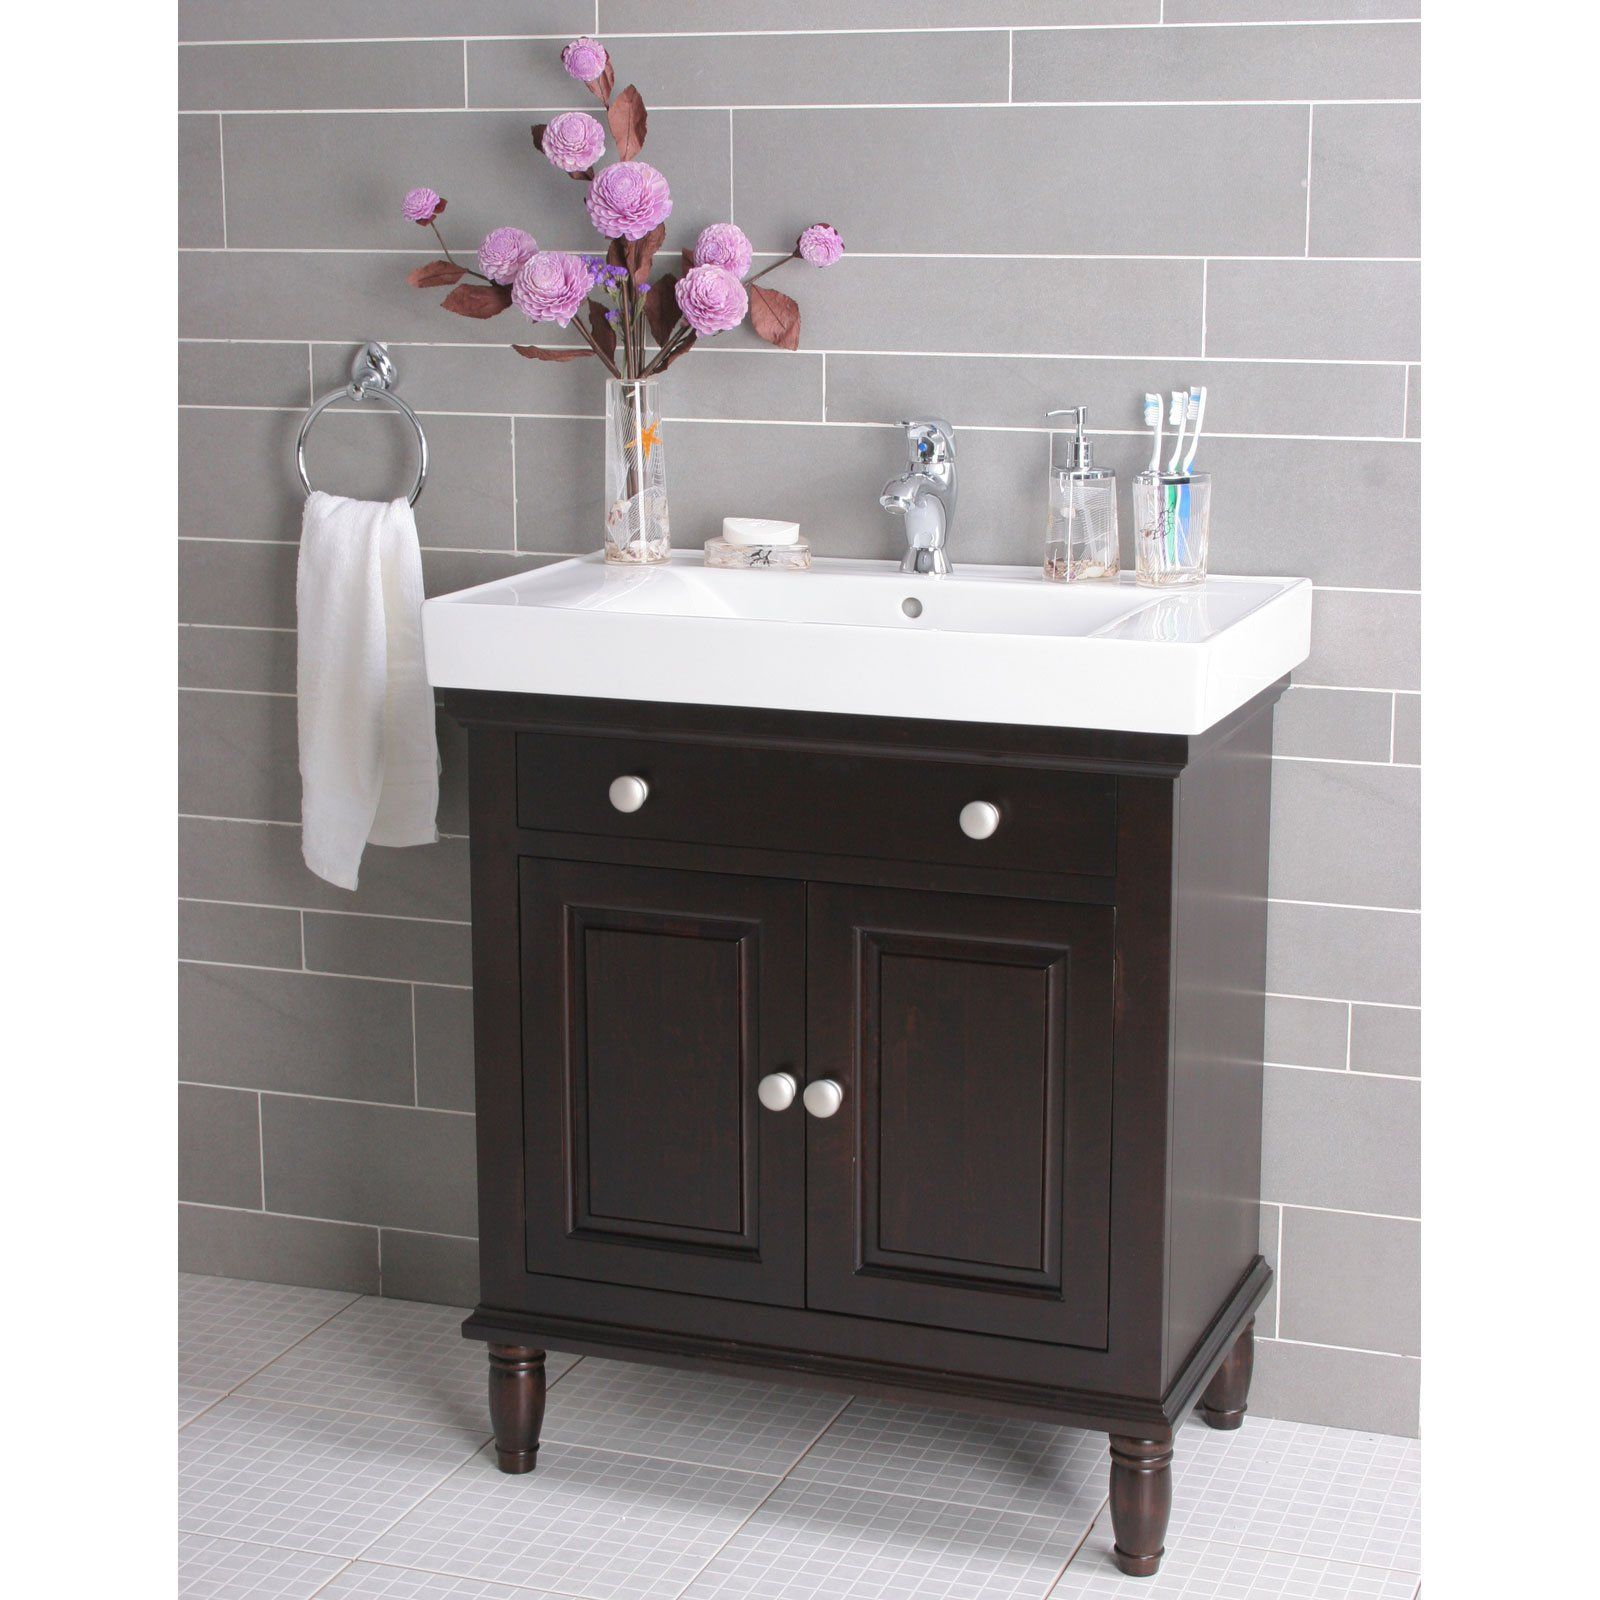 Have To Have It Stockholm Single Bathroom Vanity 808 82 Hayneedle Narrow Bathroom Vanities Wooden Bathroom Vanity Small Bathroom Vanities